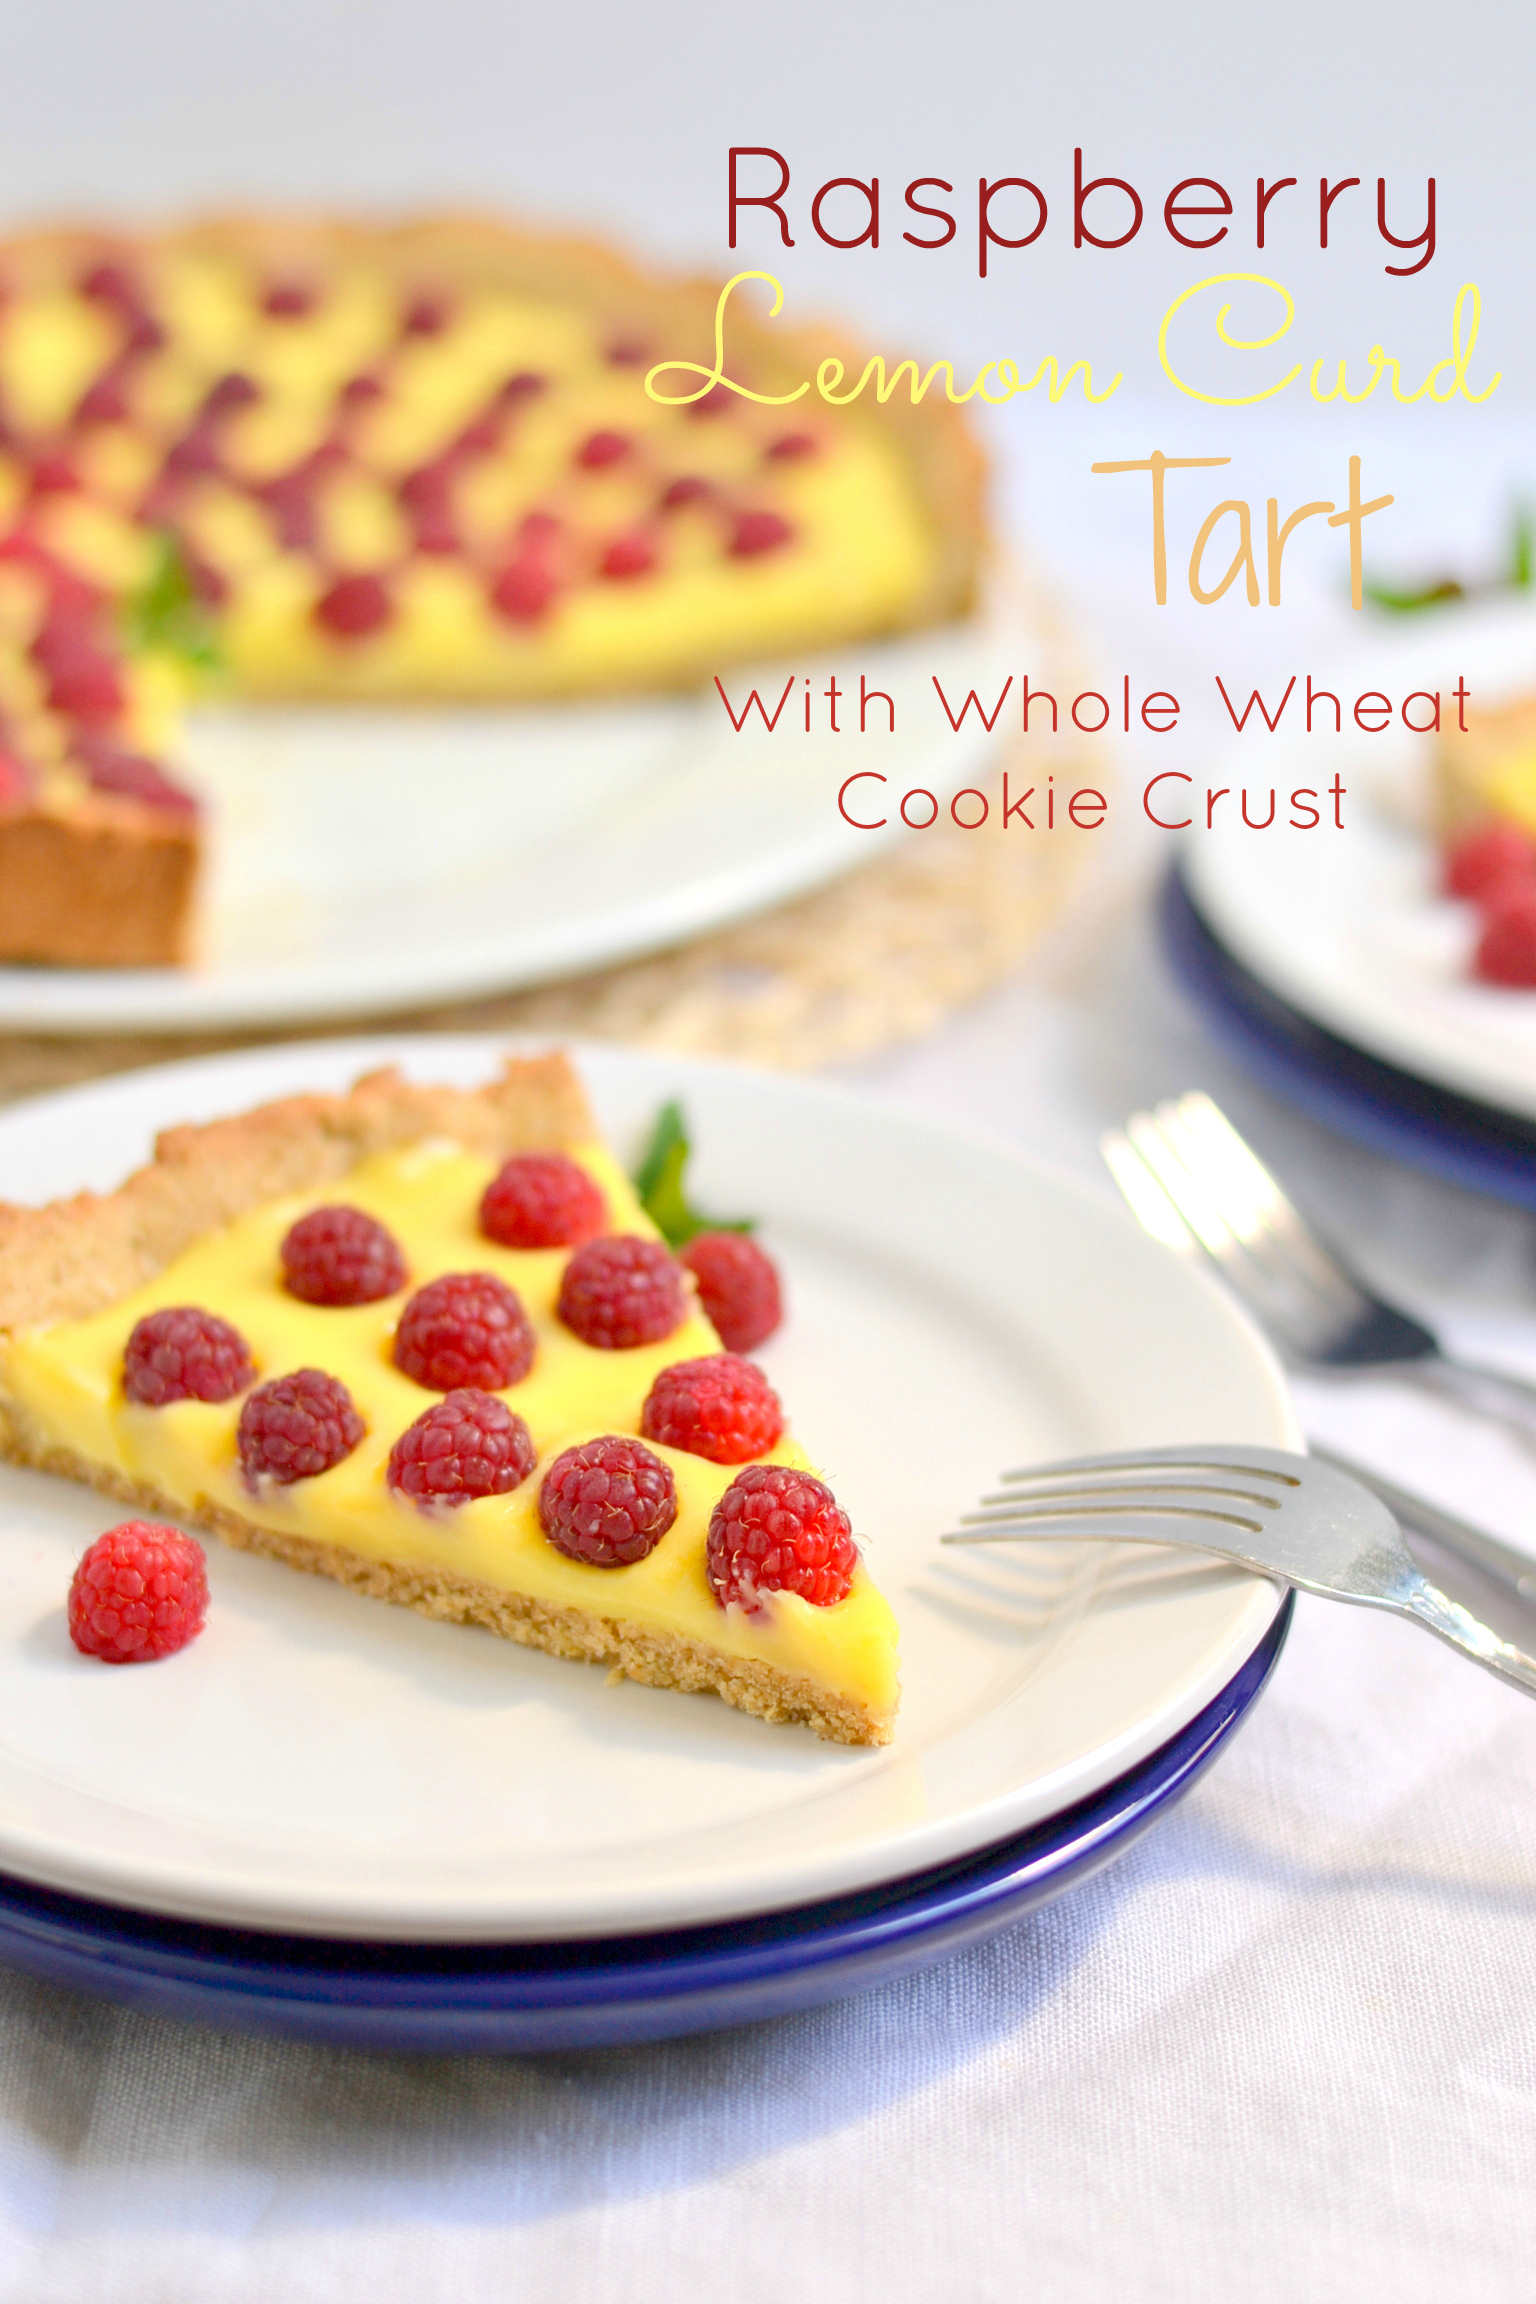 Raspberry Honey Lemon Curd Tart with Whole Wheat Cookie Crust